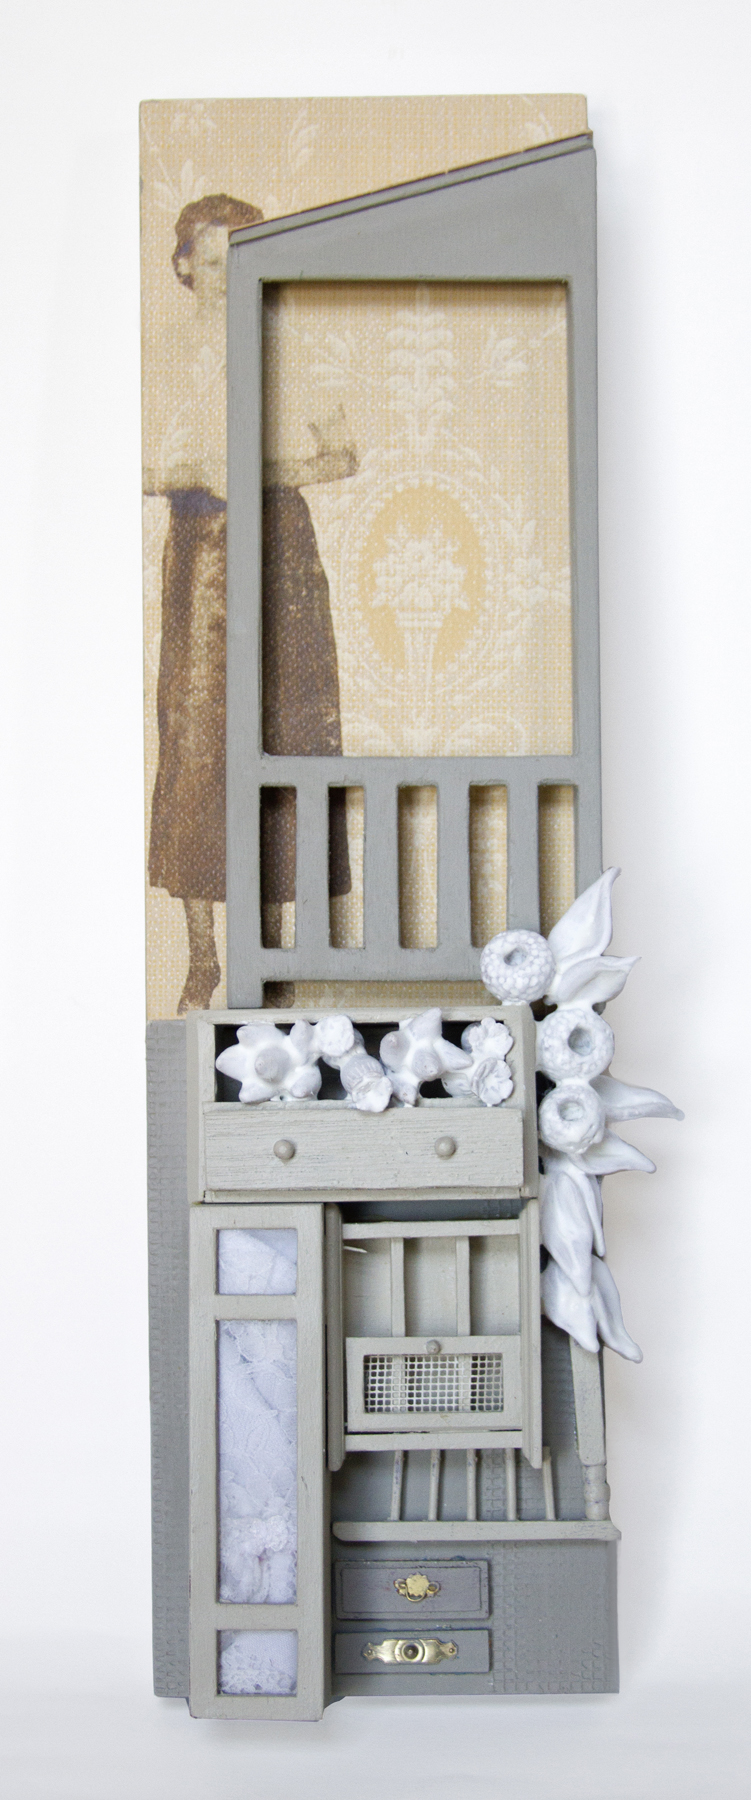 Chelsea Revelle,  Spengler: Hidden Mother Series,  Assemblage, 16x4.5x2.5